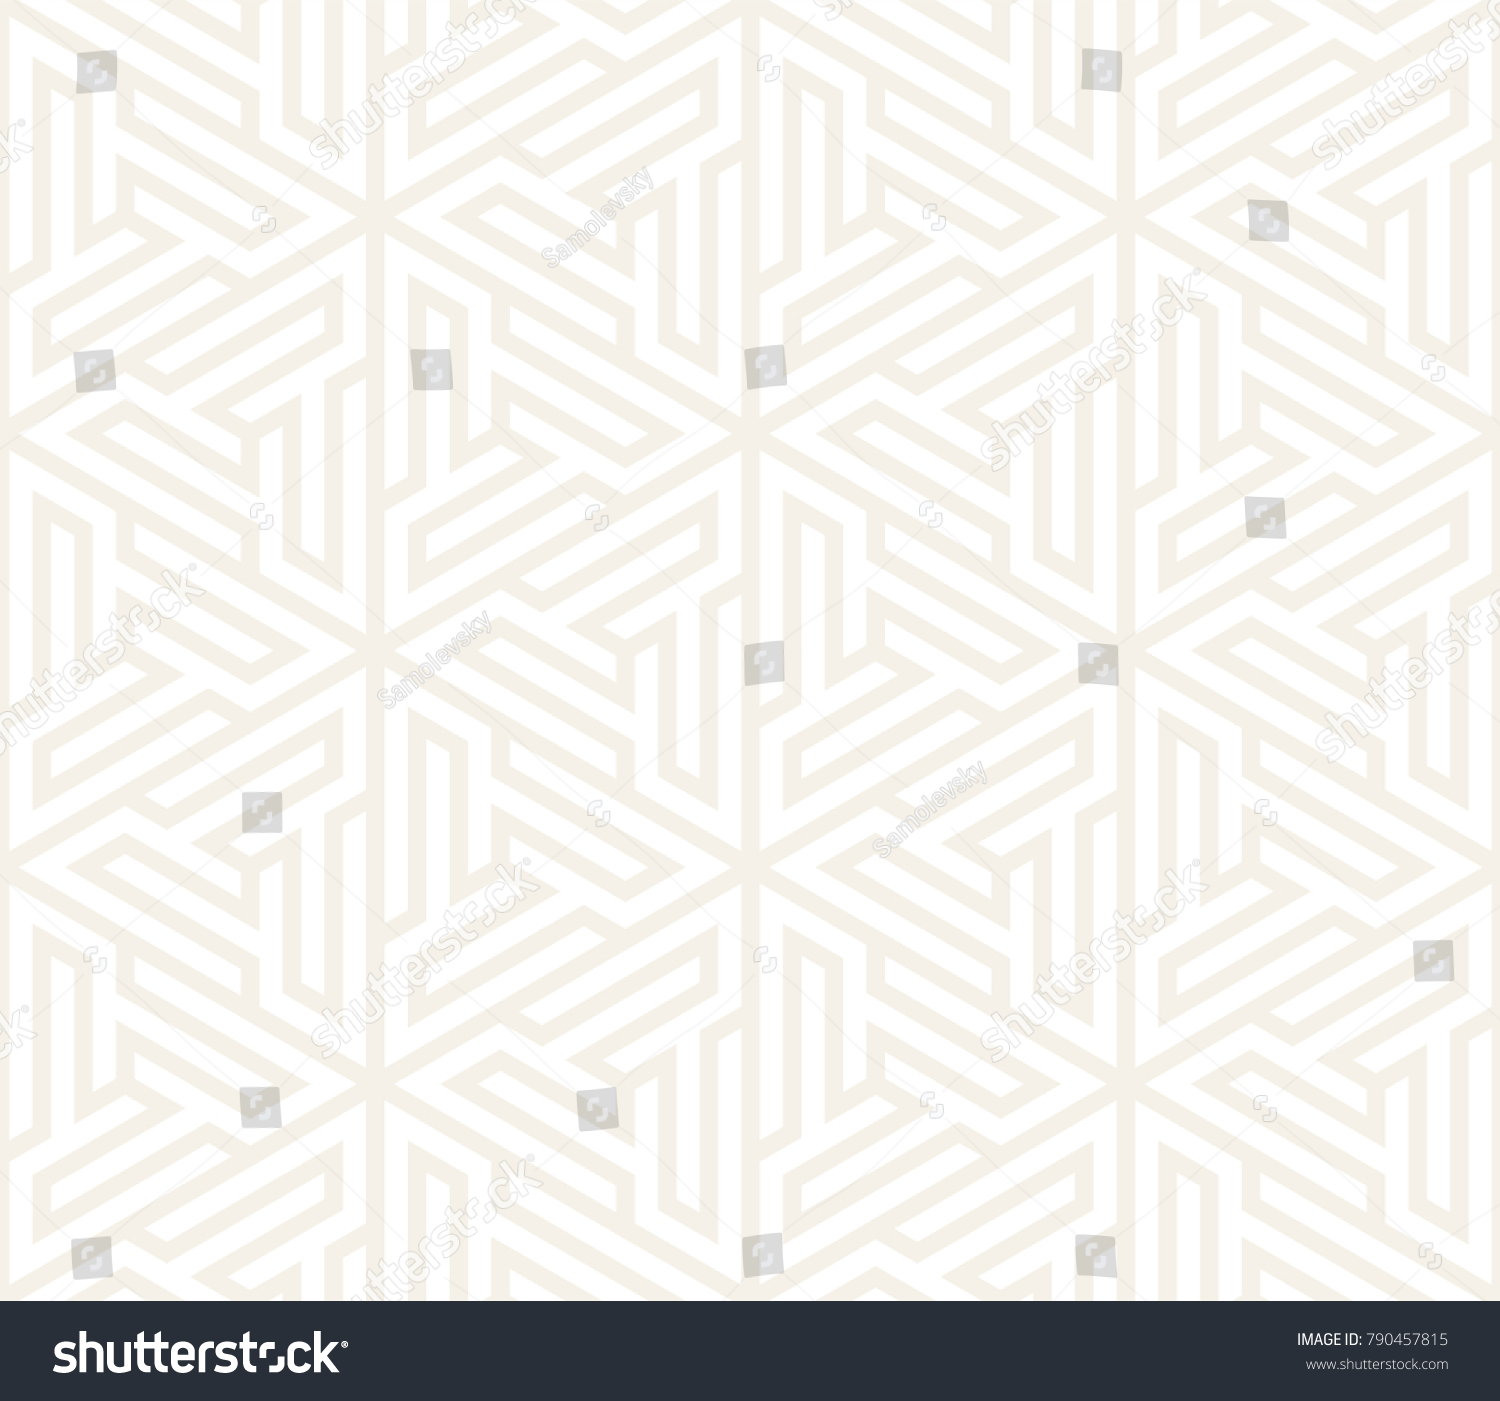 Vector Seamless Pattern Modern Stylish Texture Repeating Geometric Tiles From